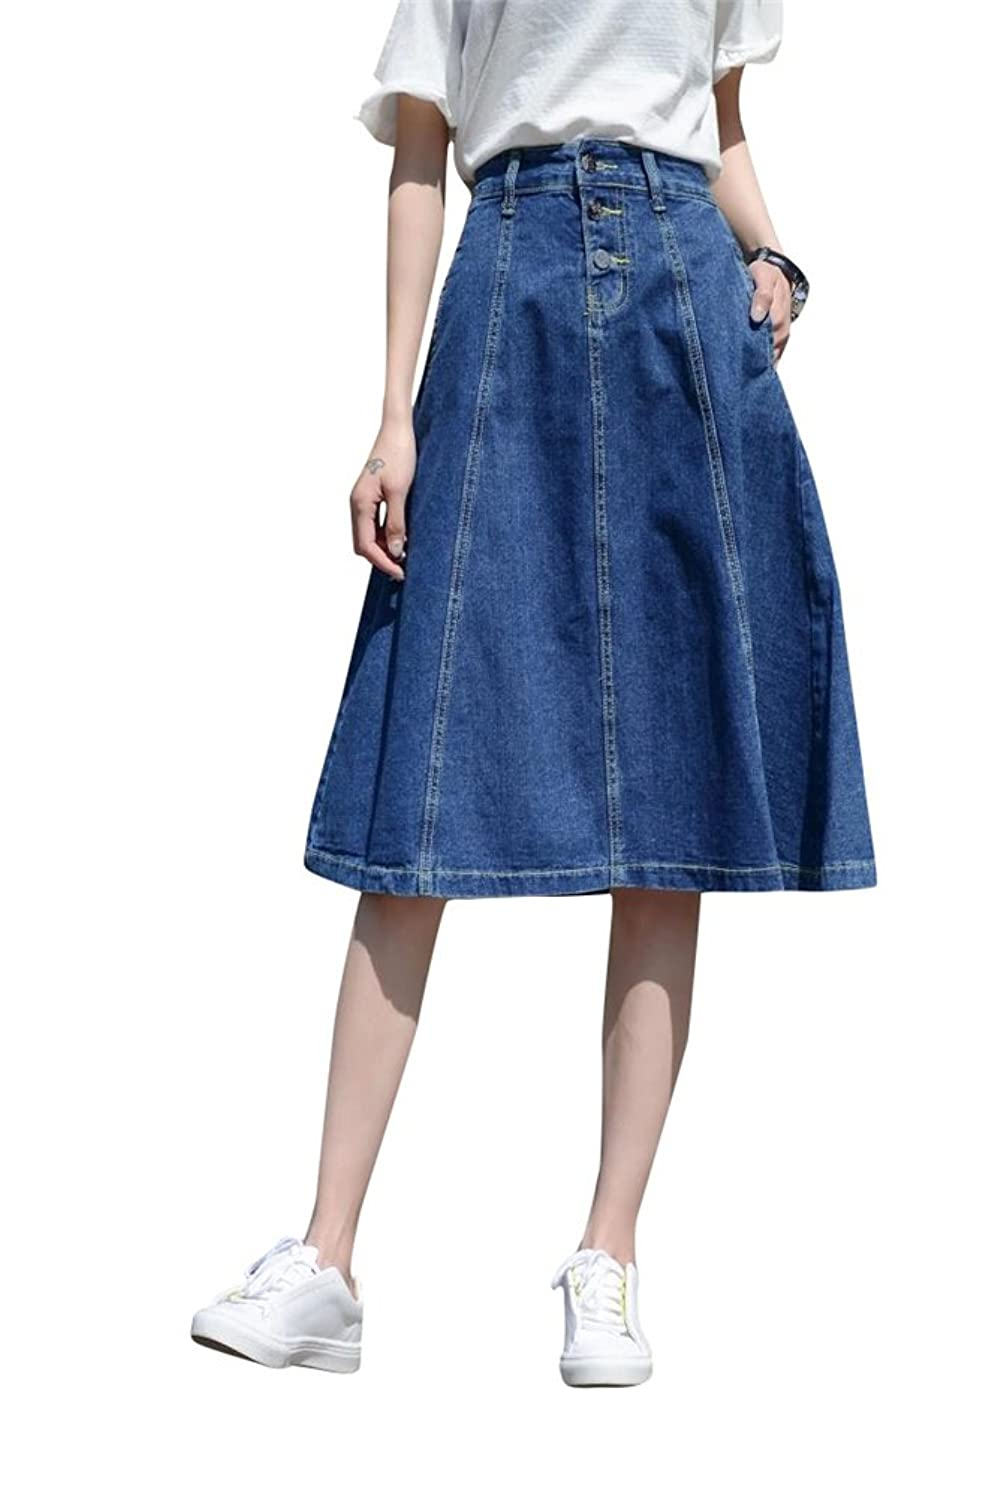 ACE SHOCK Women's A-Line High Waist Slim Fit Long Full Denim Skirts Plus Size